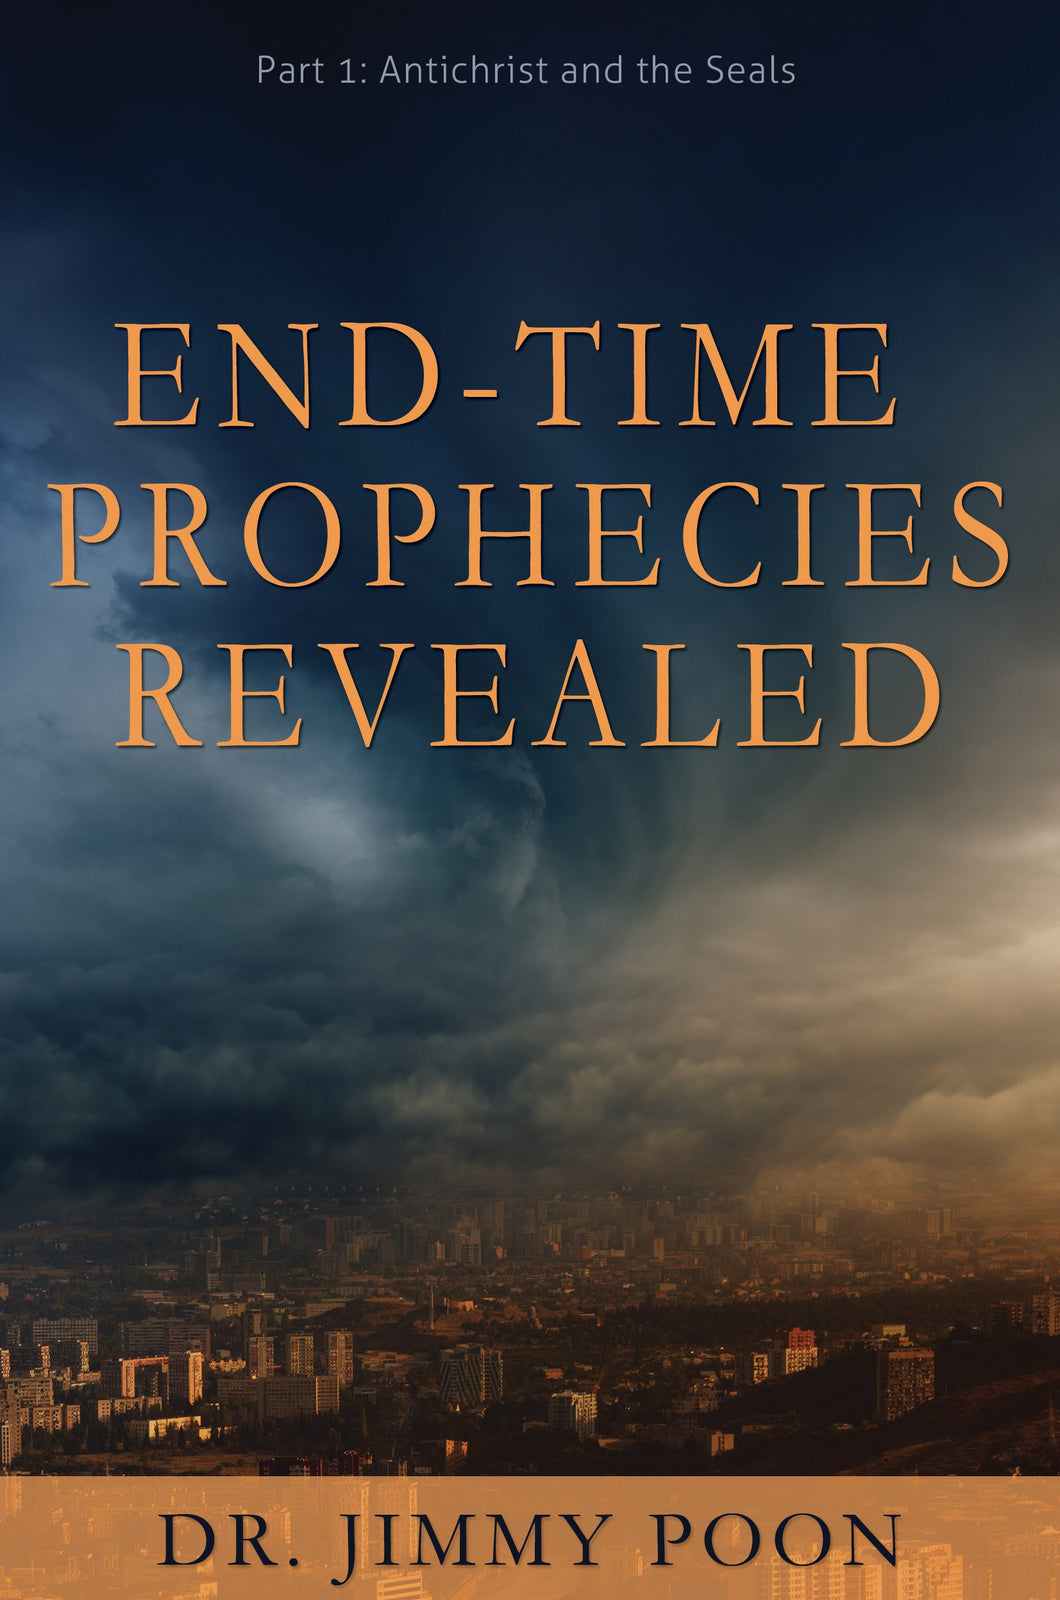 End-Time Prophecies Revealed